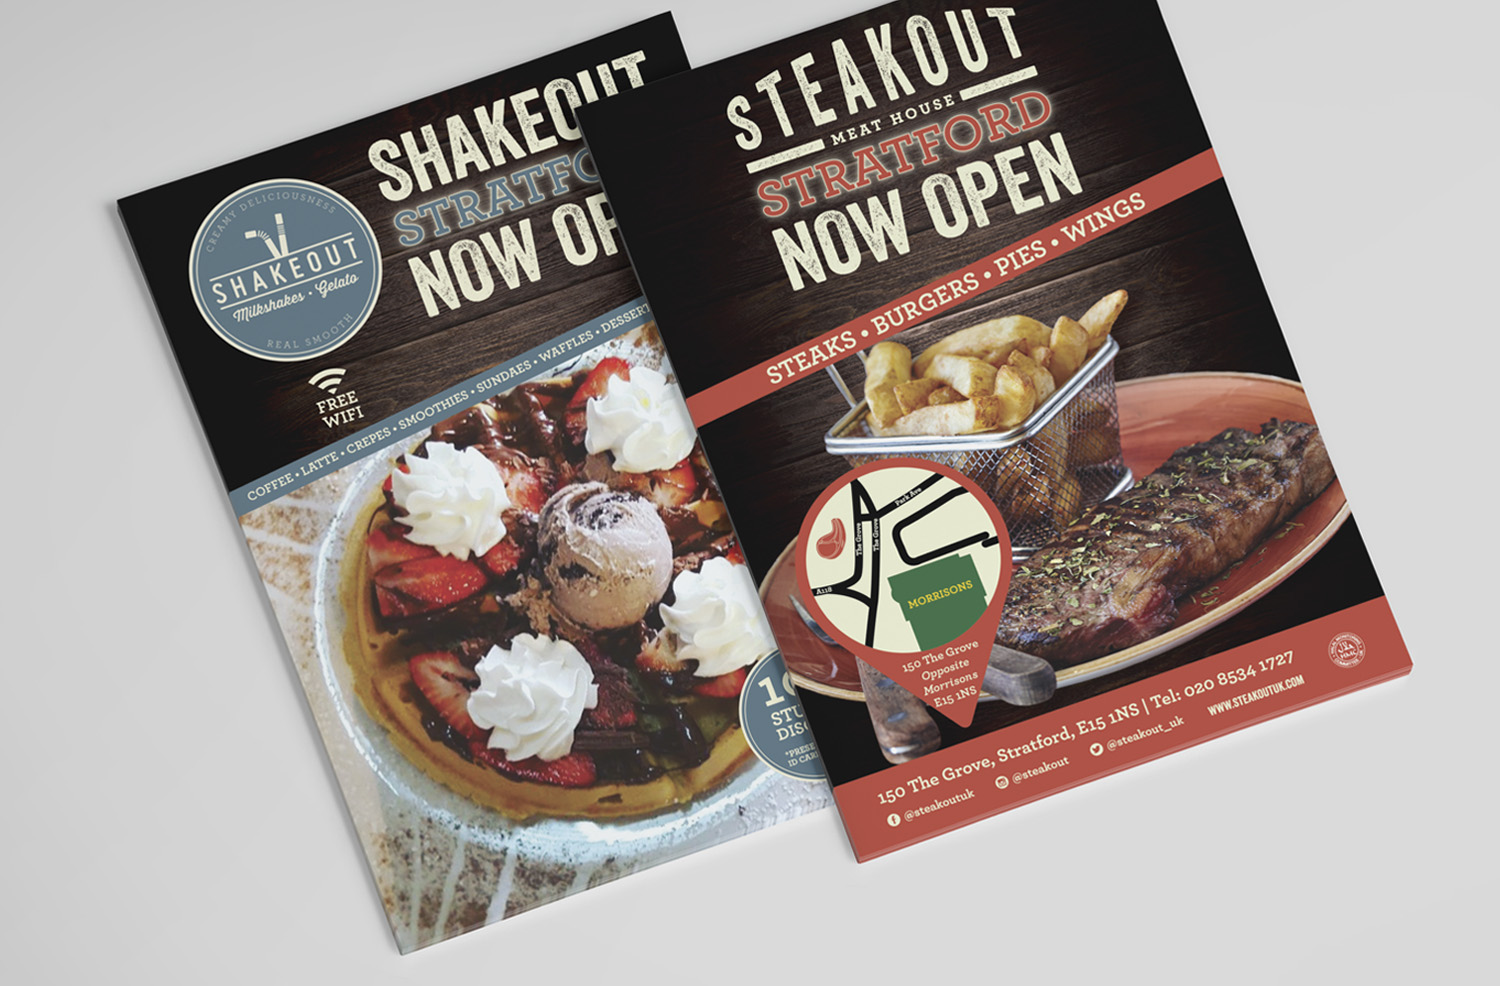 steakout-stratford-now-open-flyer.jpg